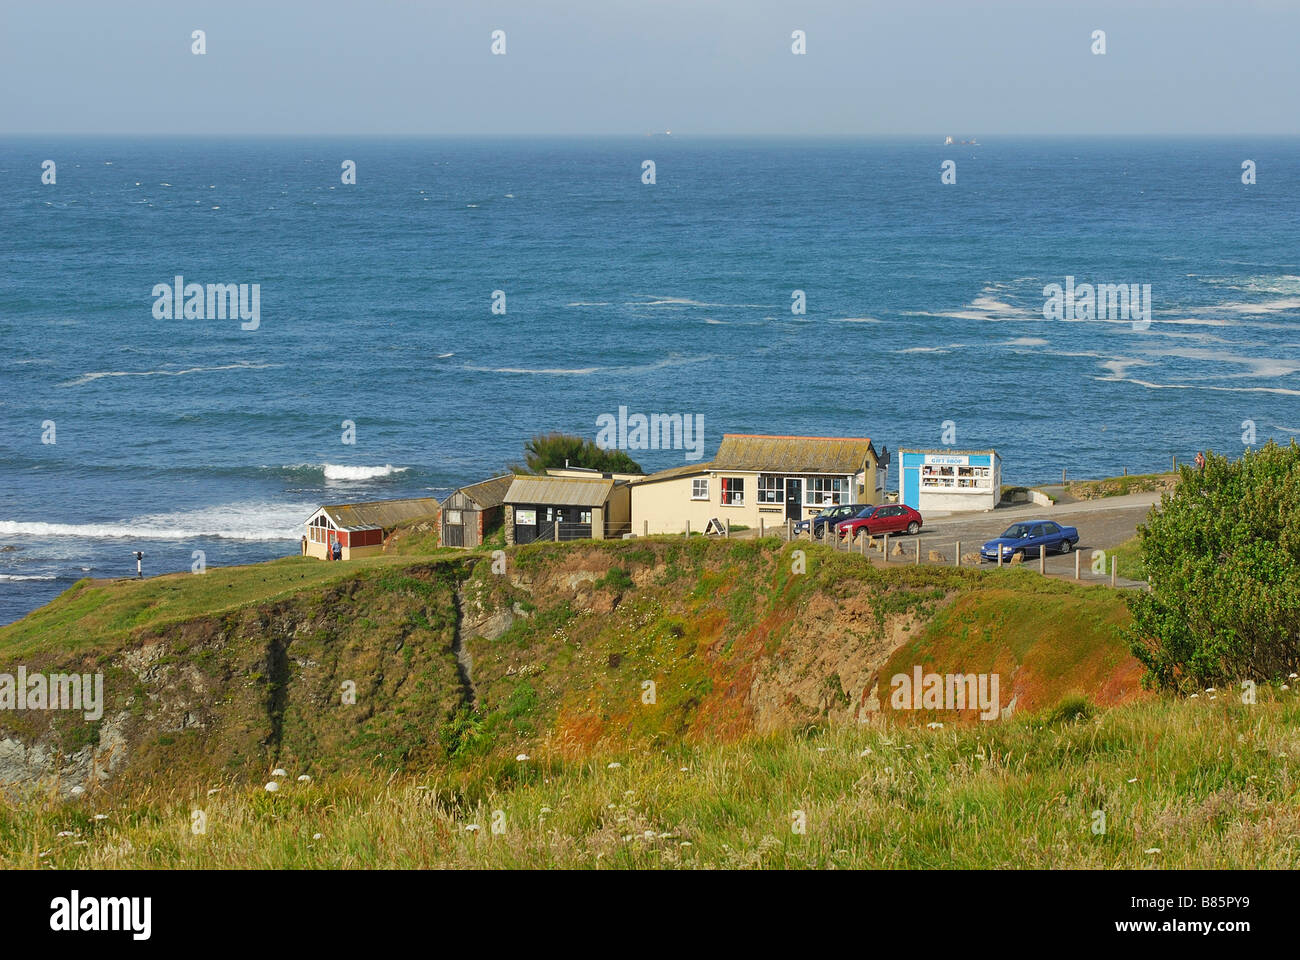 Most southerly cafe, Polpeor, Cornwall, UK - Stock Image